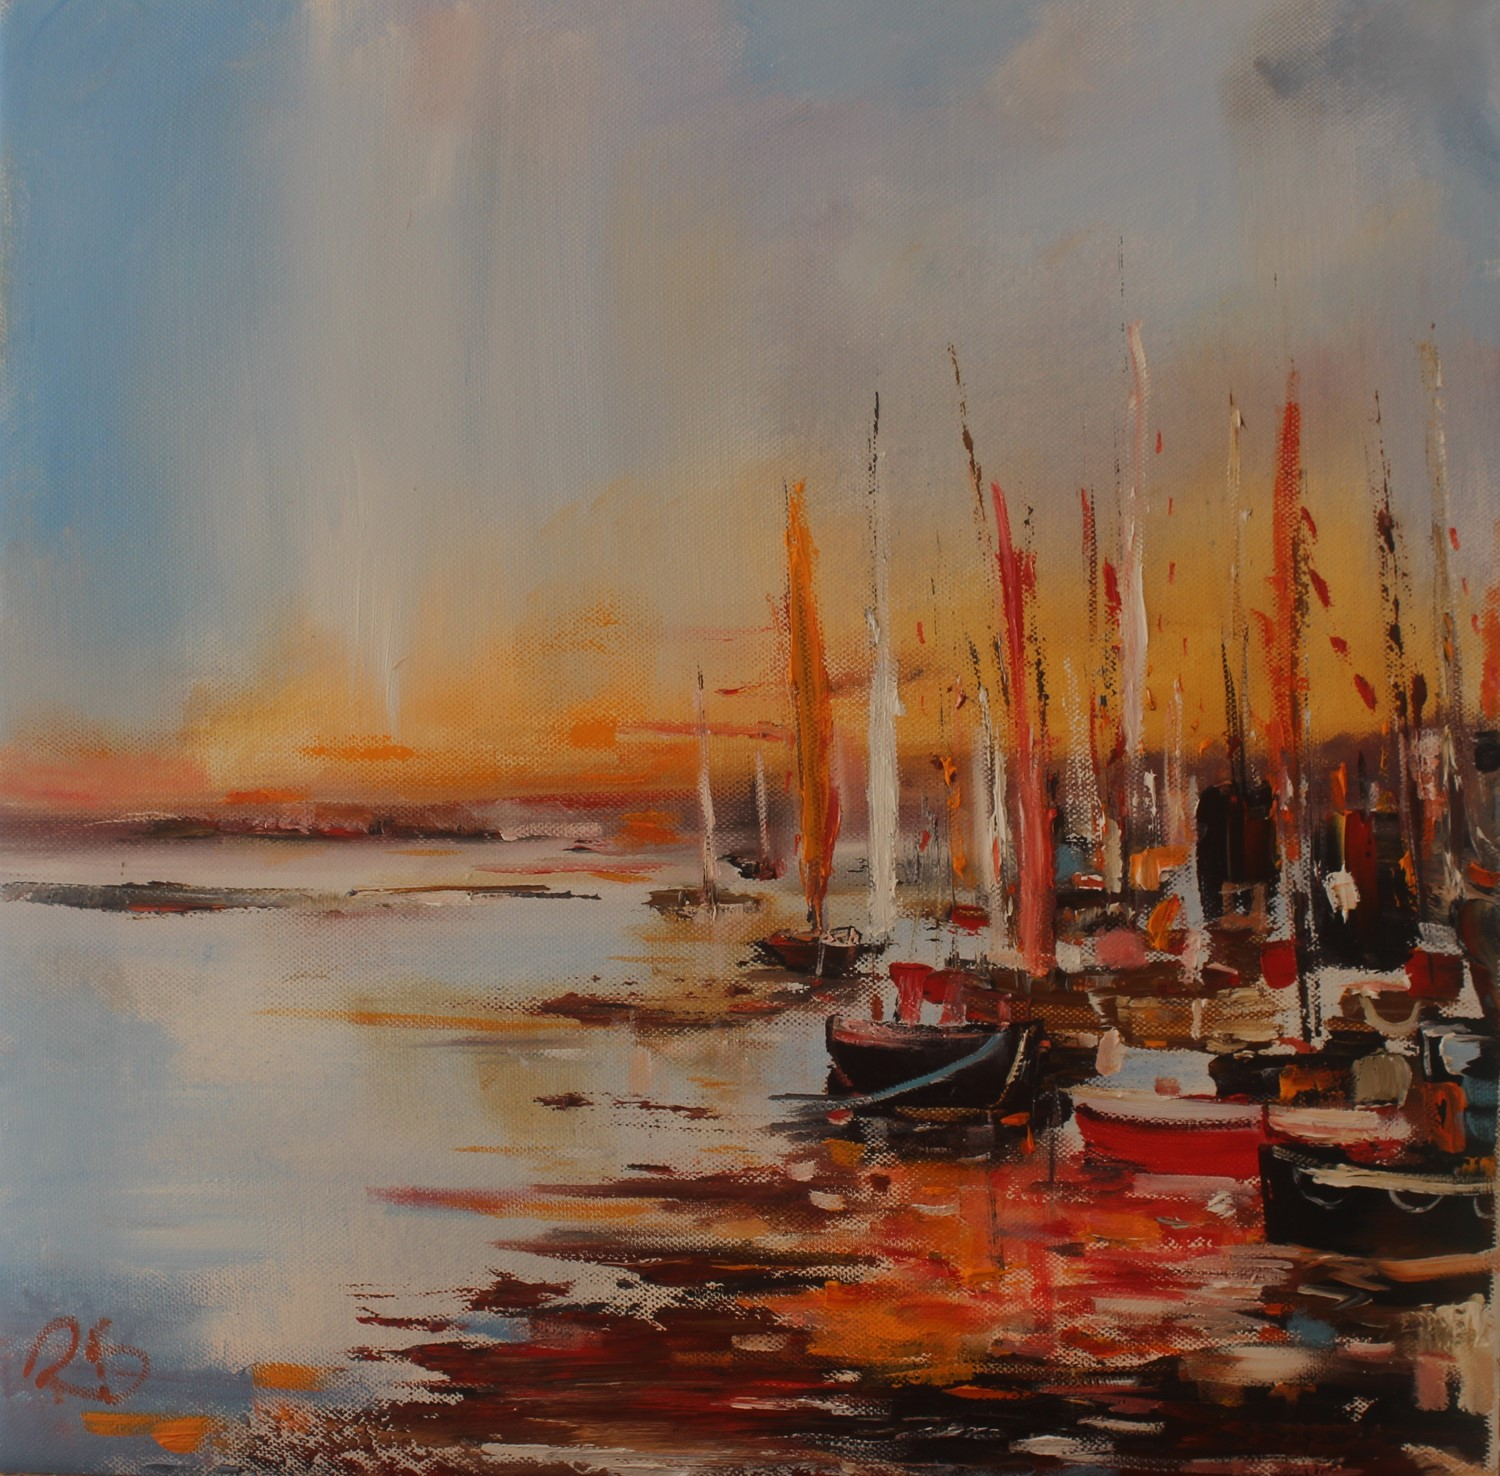 'A Little Guddle of boats' by artist Rosanne Barr